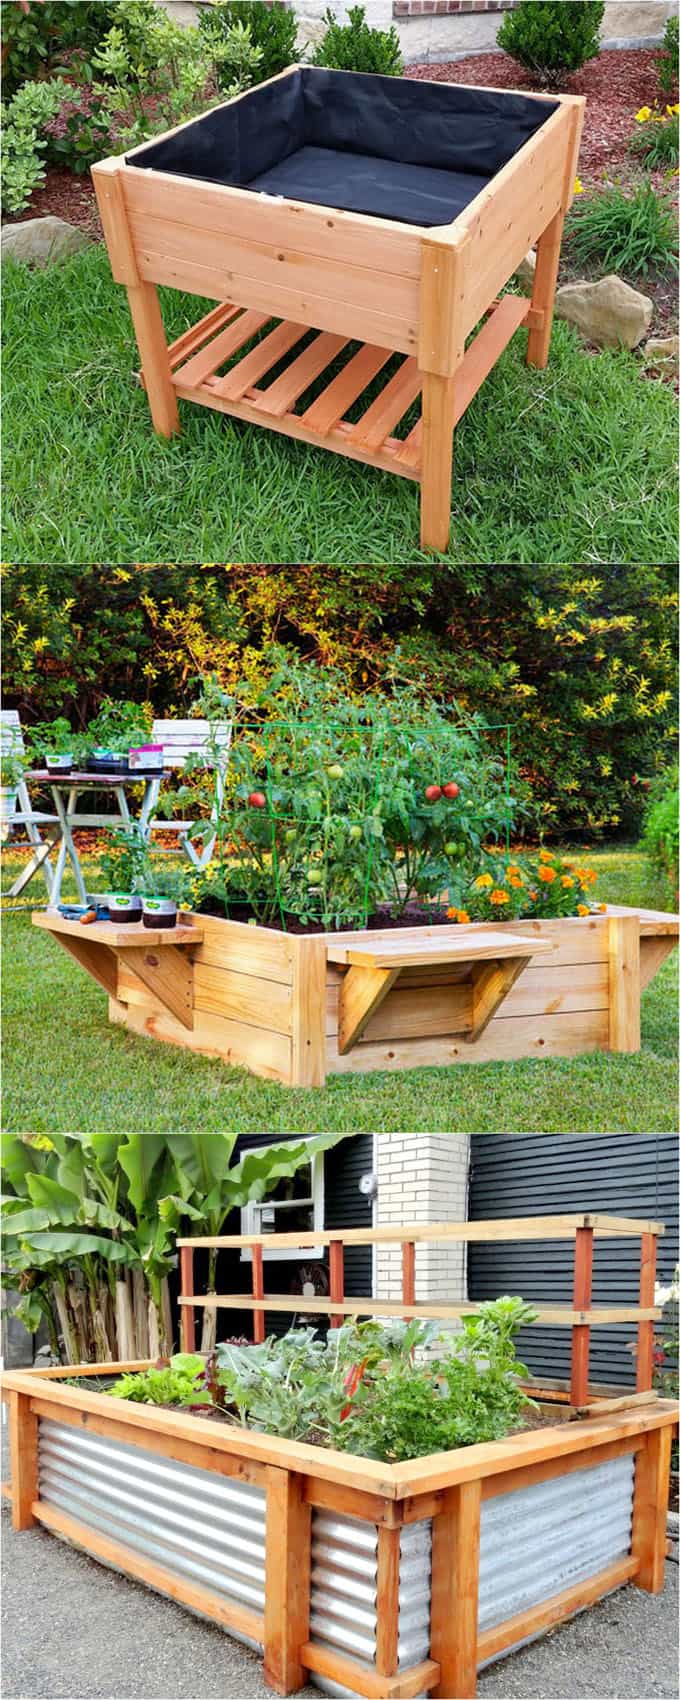 28 Amazing DIY Raised Bed Gardens - A Piece Of Rainbow on raised desk designs, raised garden box designs, raised garden lighting, raised wood designs, raised garden planter designs, raised garden trellis designs, raised garden accessories, raised garden bed designs, raised fireplace designs,